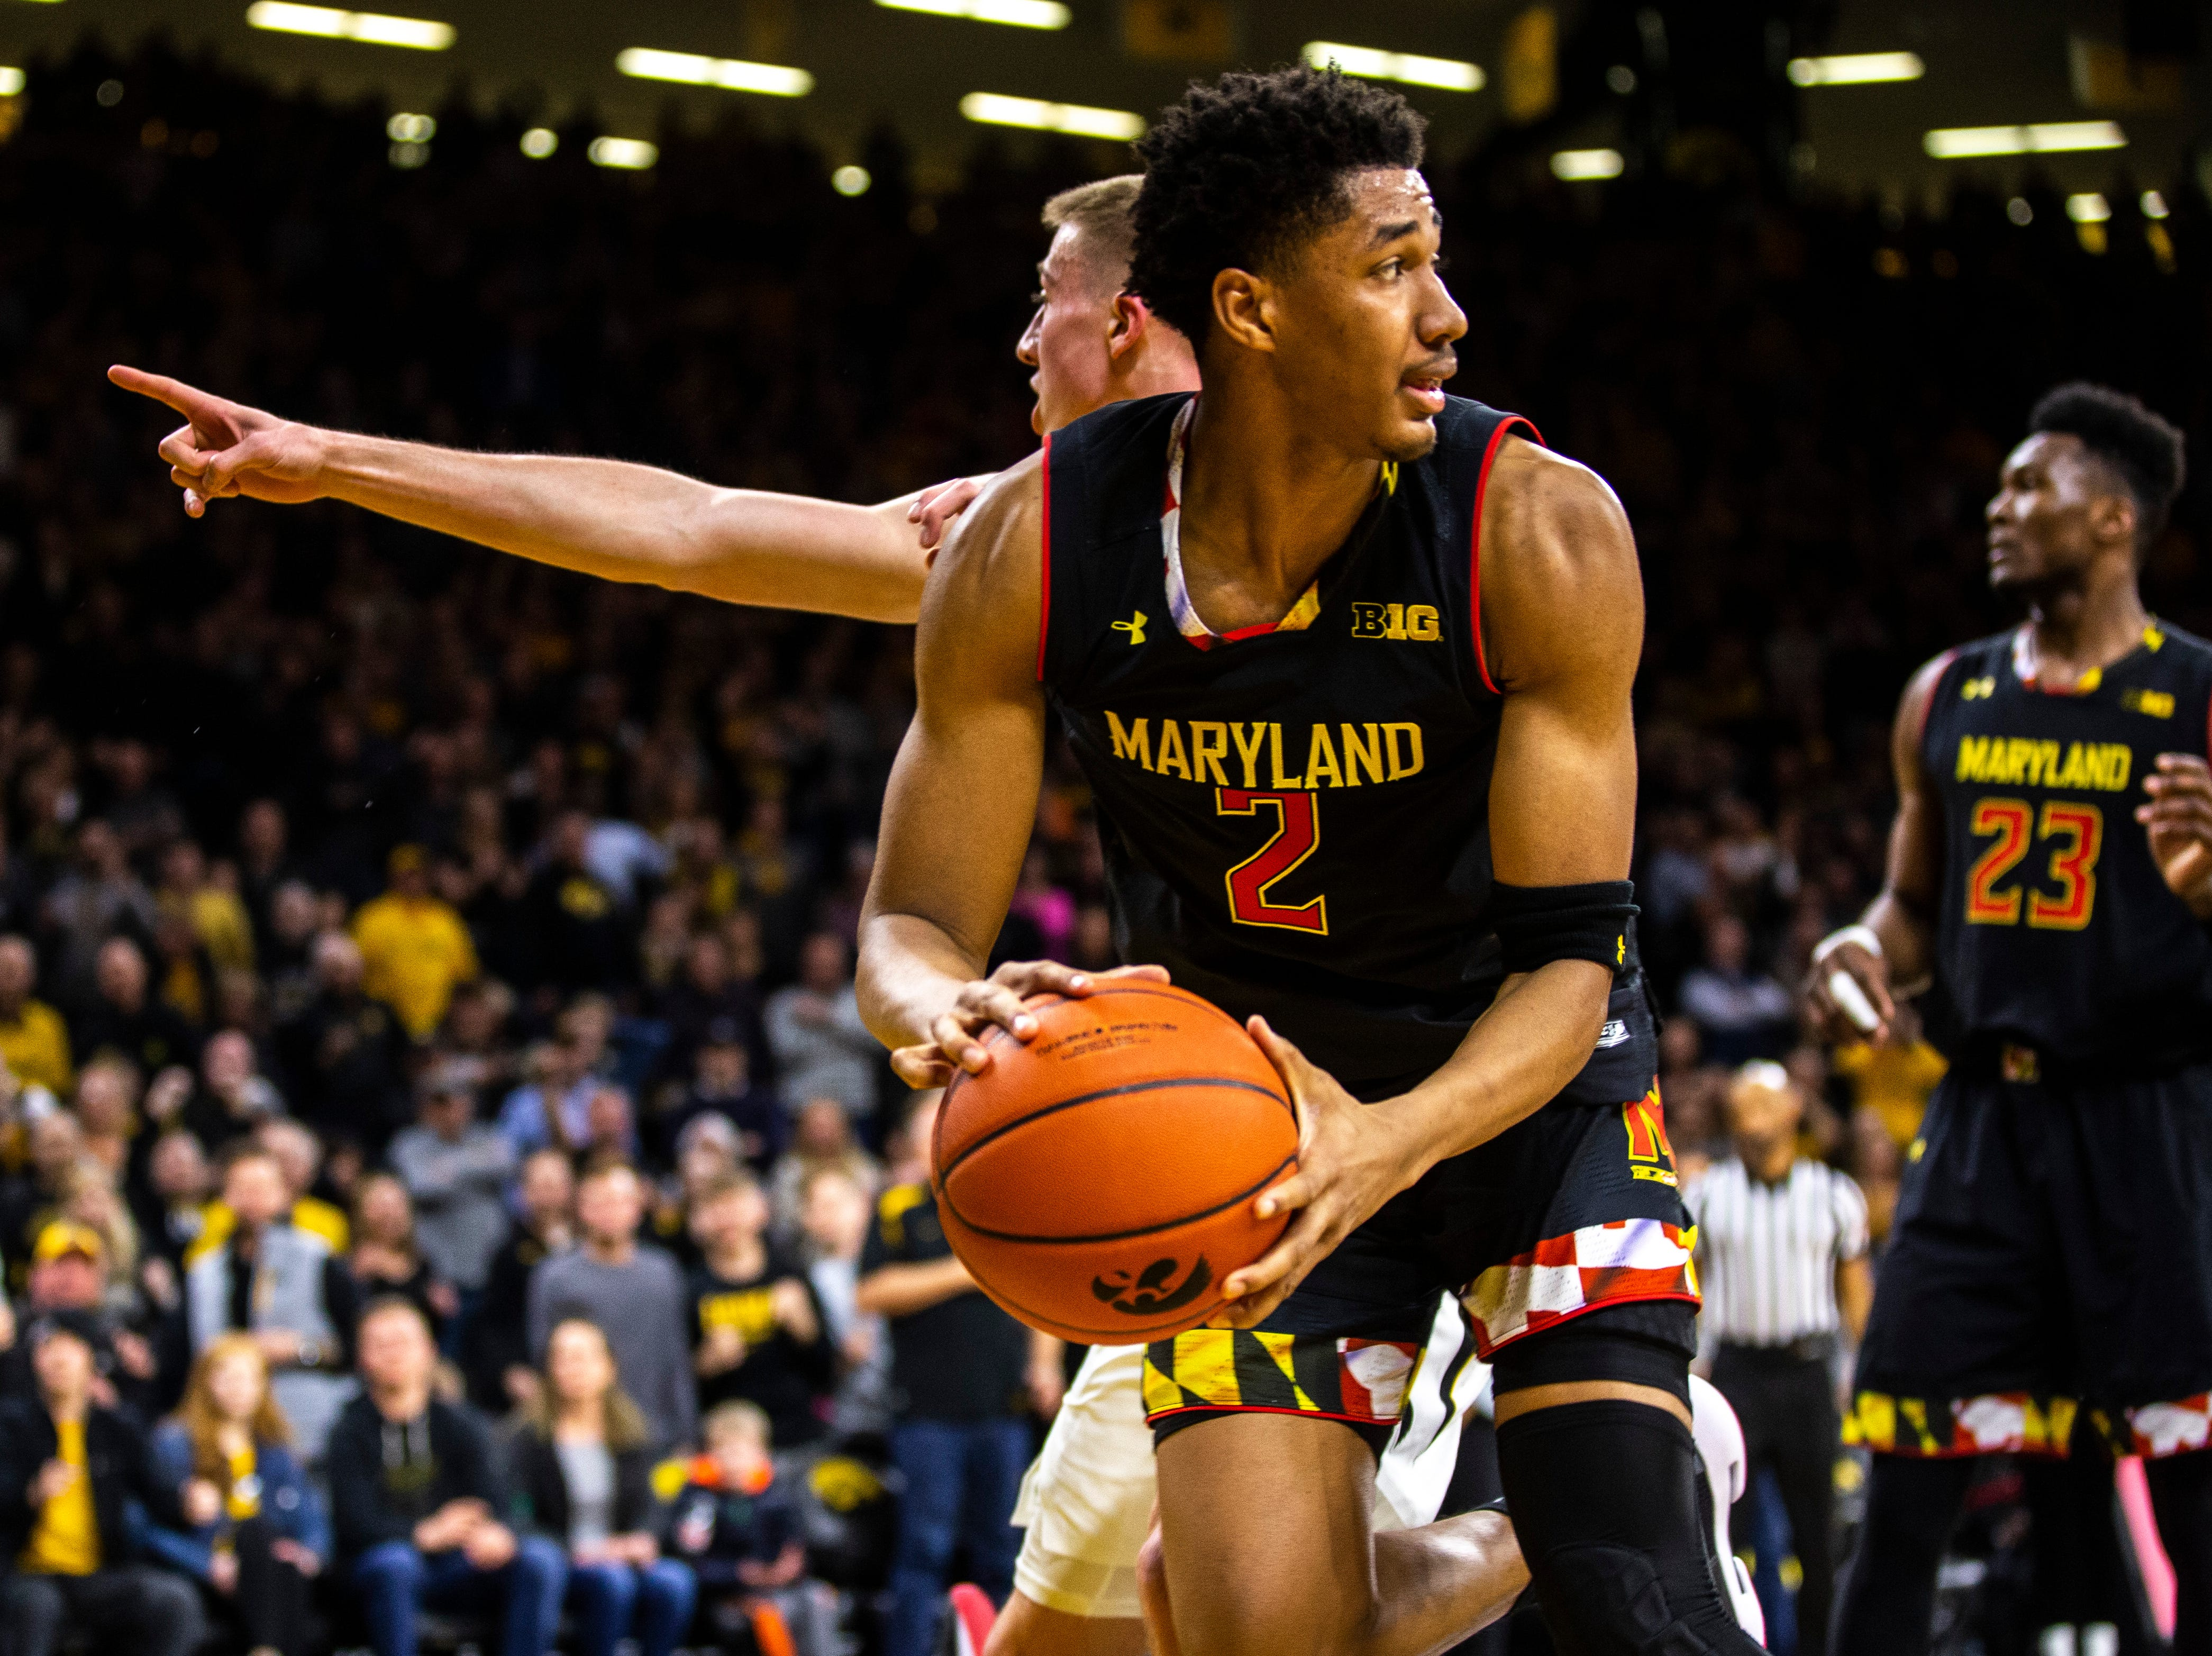 Maryland guard Aaron Wiggins (2) grabs a rebound off of a missed 3-point attempt during a NCAA Big Ten Conference men's basketball game on Tuesday, Feb. 19, 2019 at Carver-Hawkeye Arena in Iowa City, Iowa.